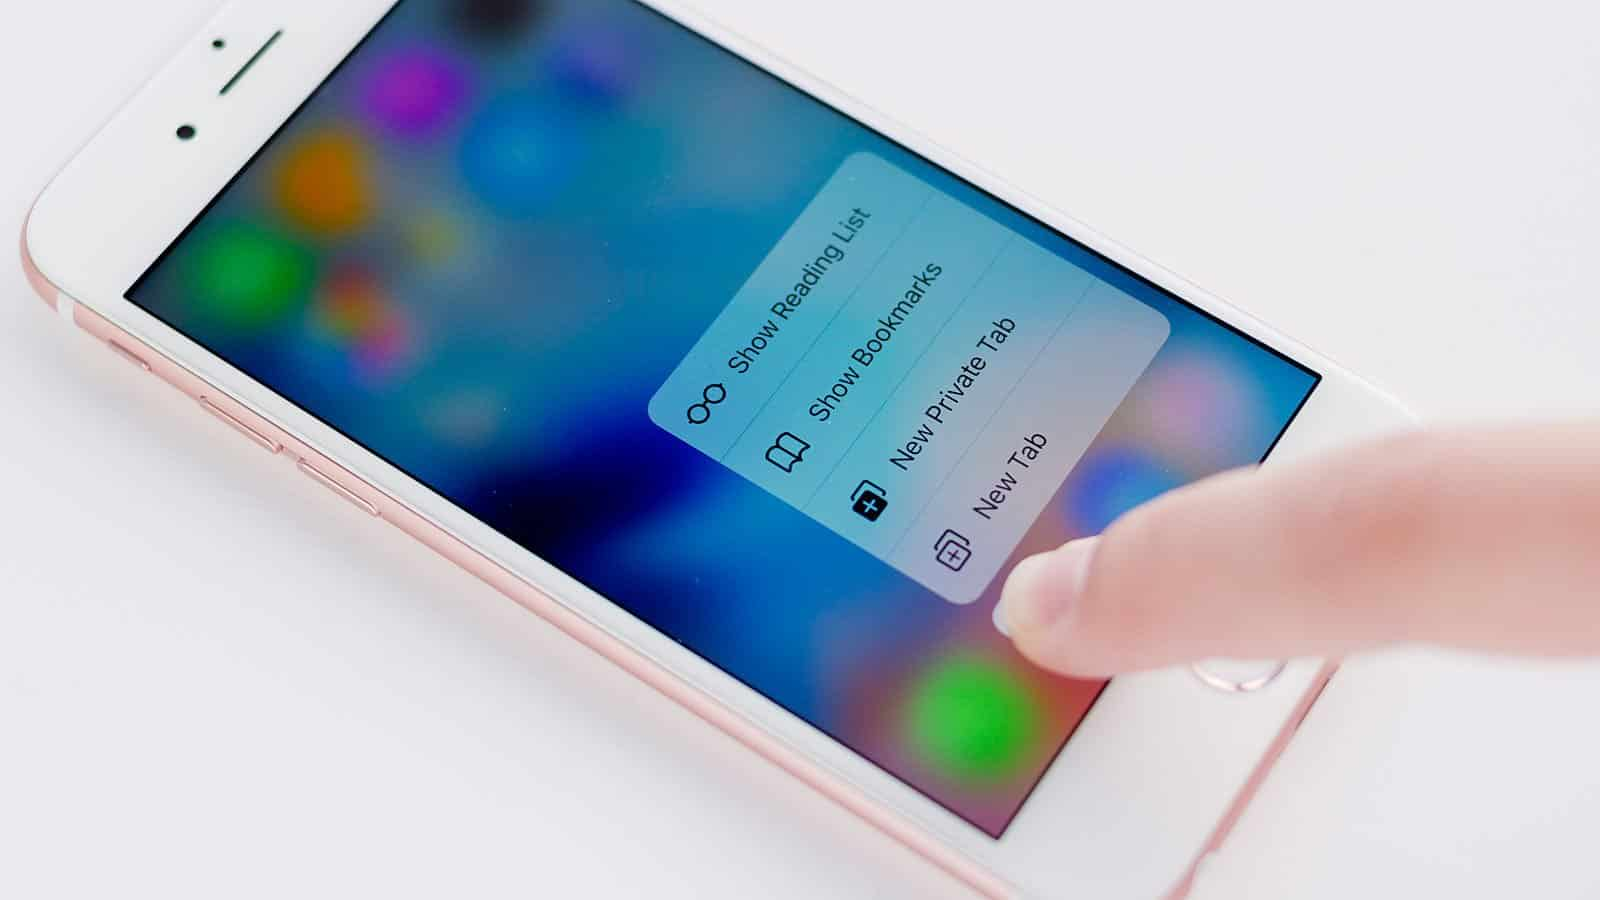 11 popular apps with support for the iphone 6s and 6s plus '3d touch